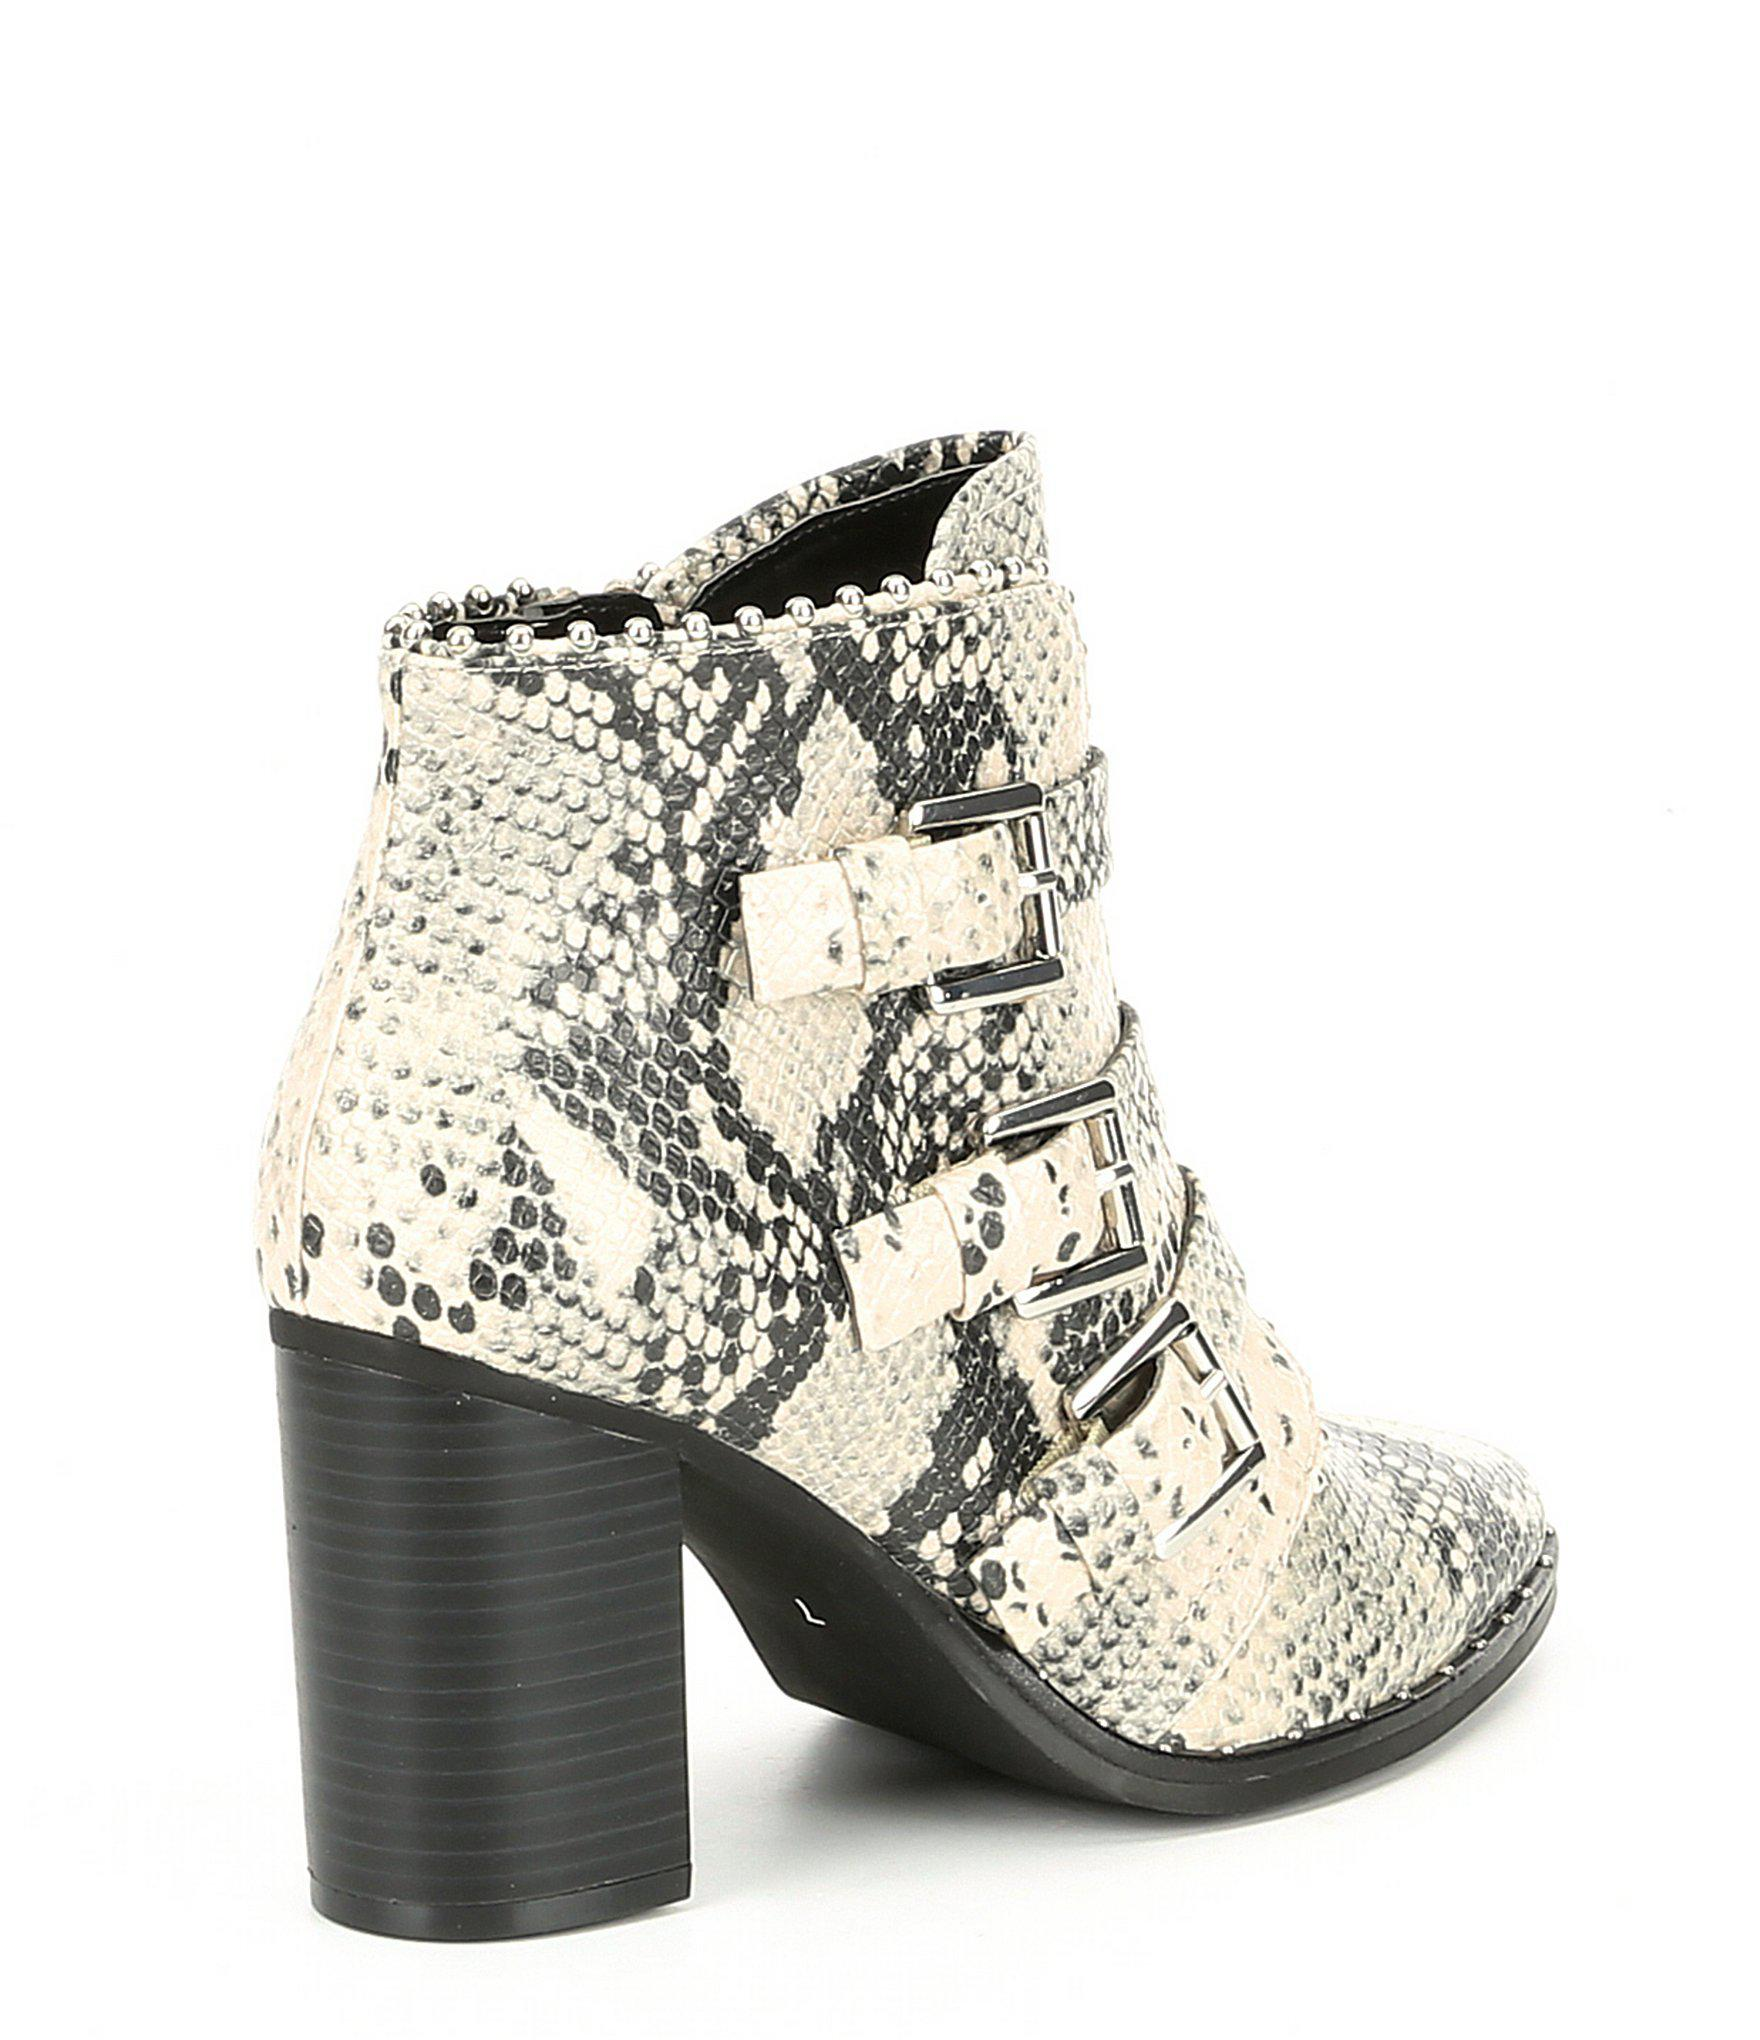 427be3bdcbf Lyst - Steve Madden Humble Snake Print Buckle Booties in Natural